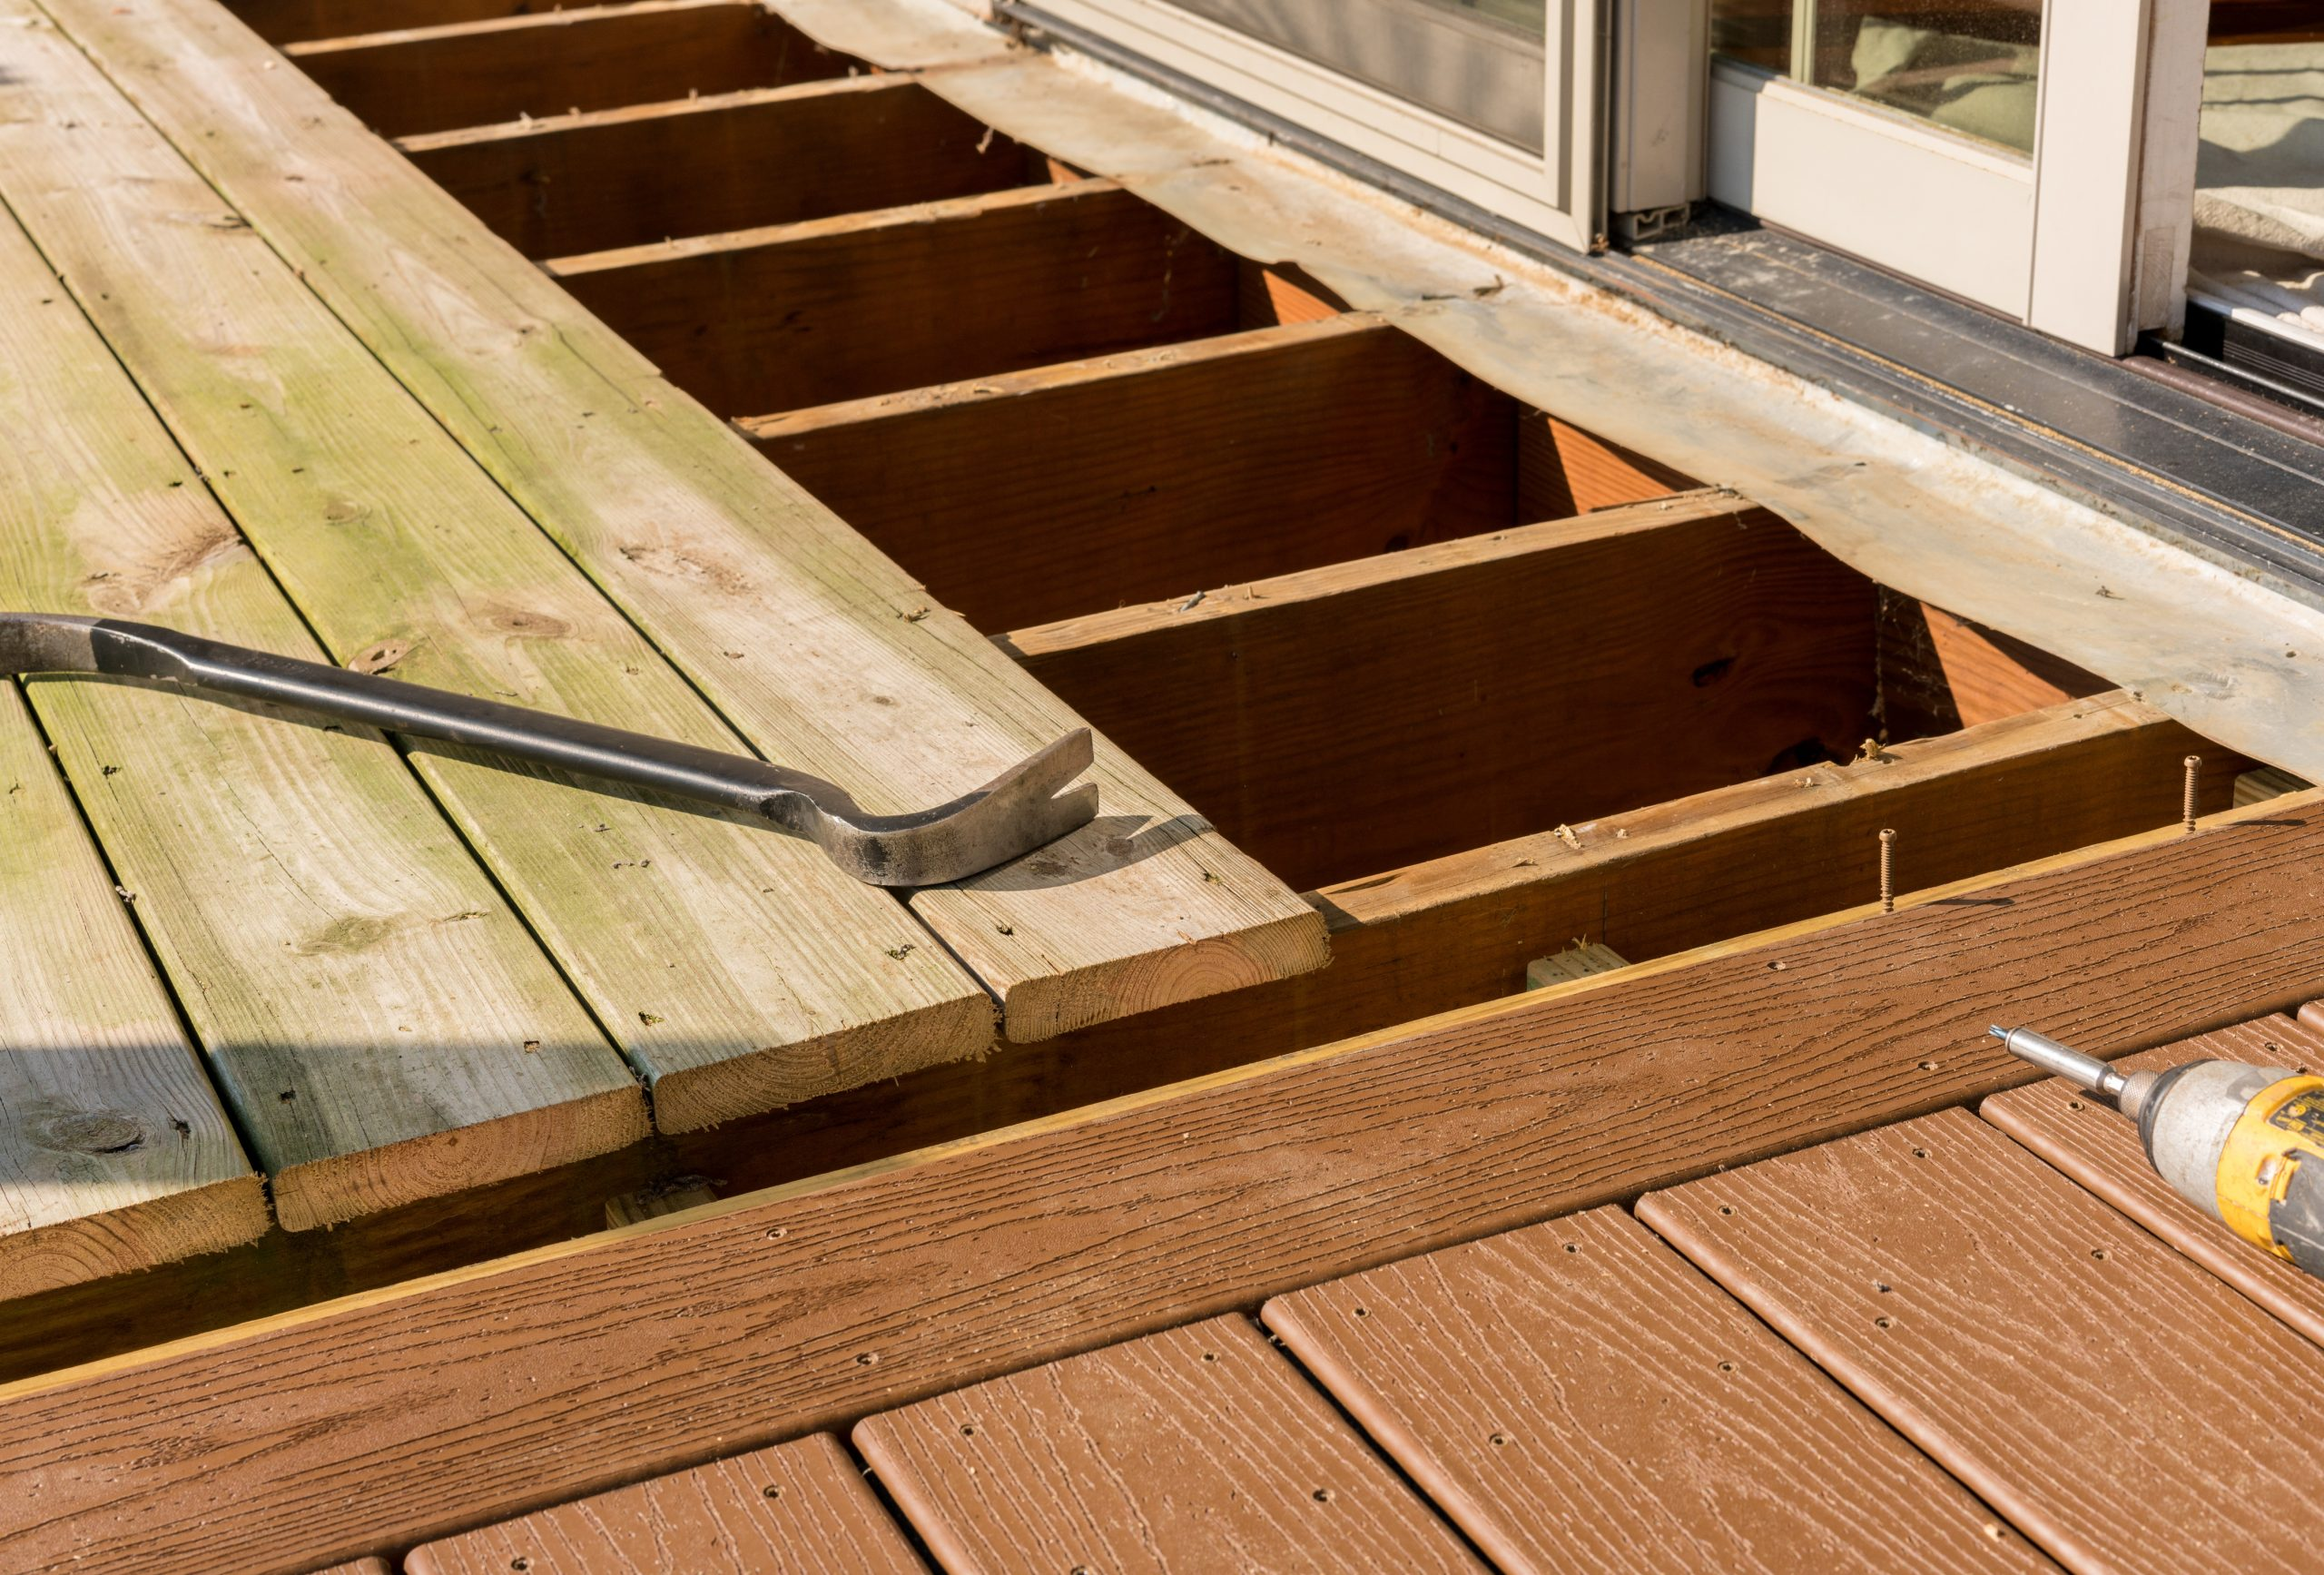 deck replacement decks replaced new deck lexington ky nicholasville wilmore keene georgetown richmond winchester ky kentucky deck builder builders contractor contractors